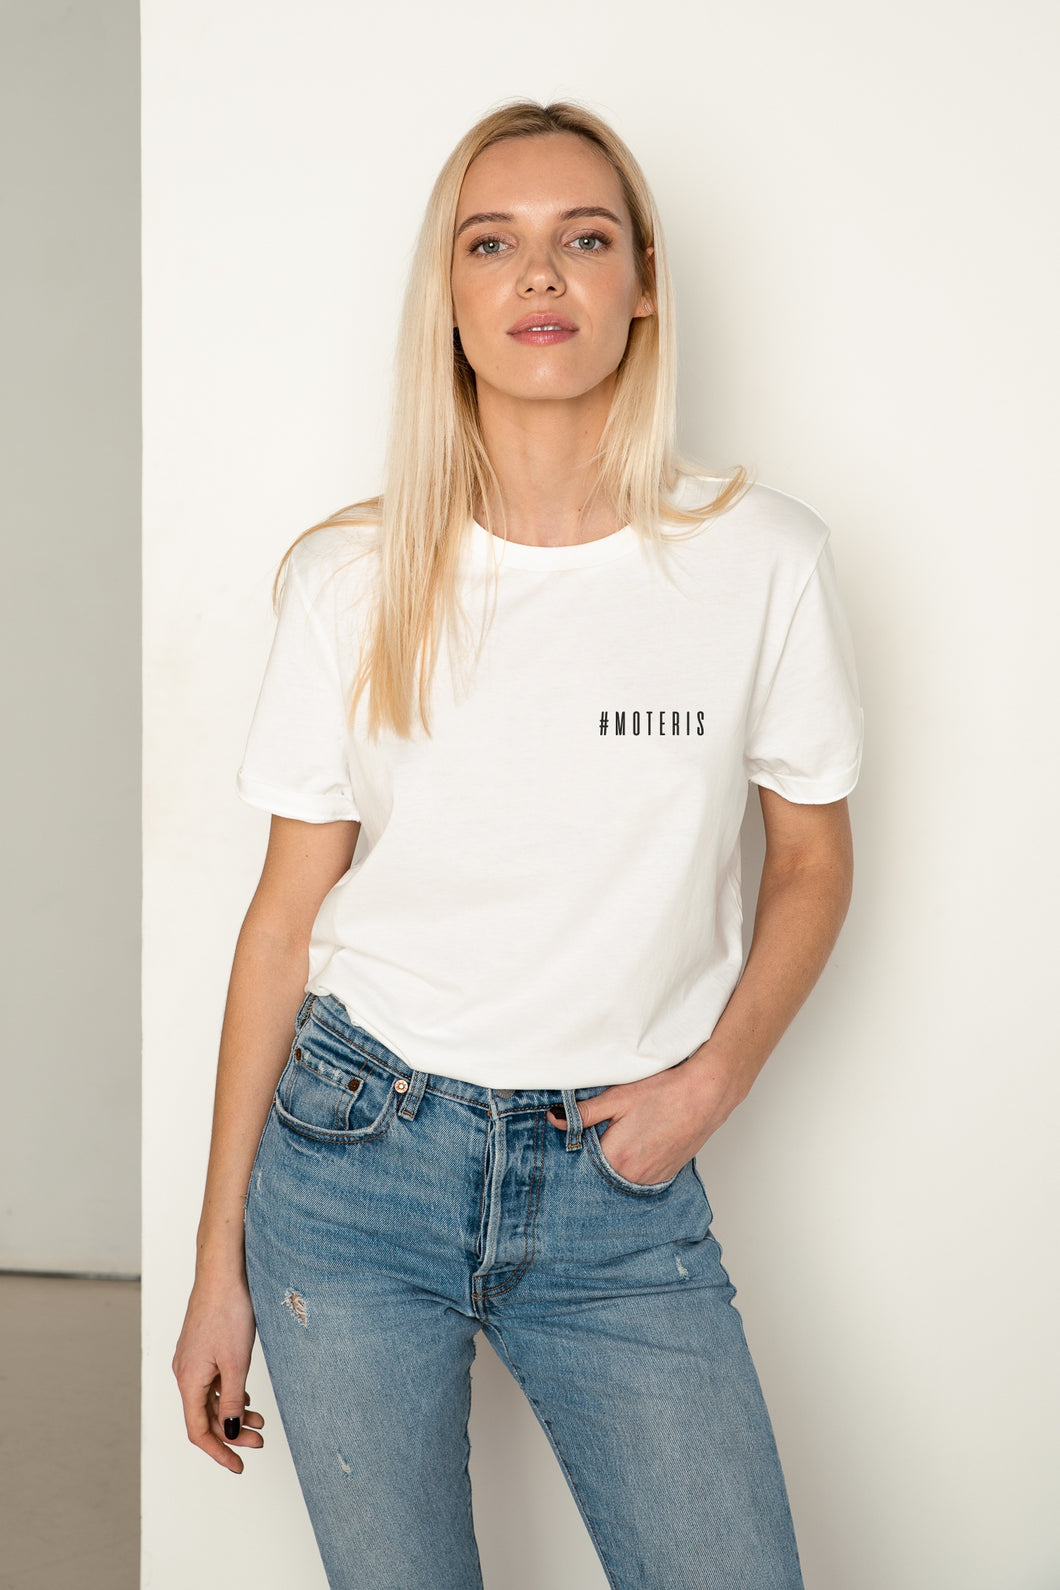 #MOTERIS Limited Edition Eco-Friendly Tee